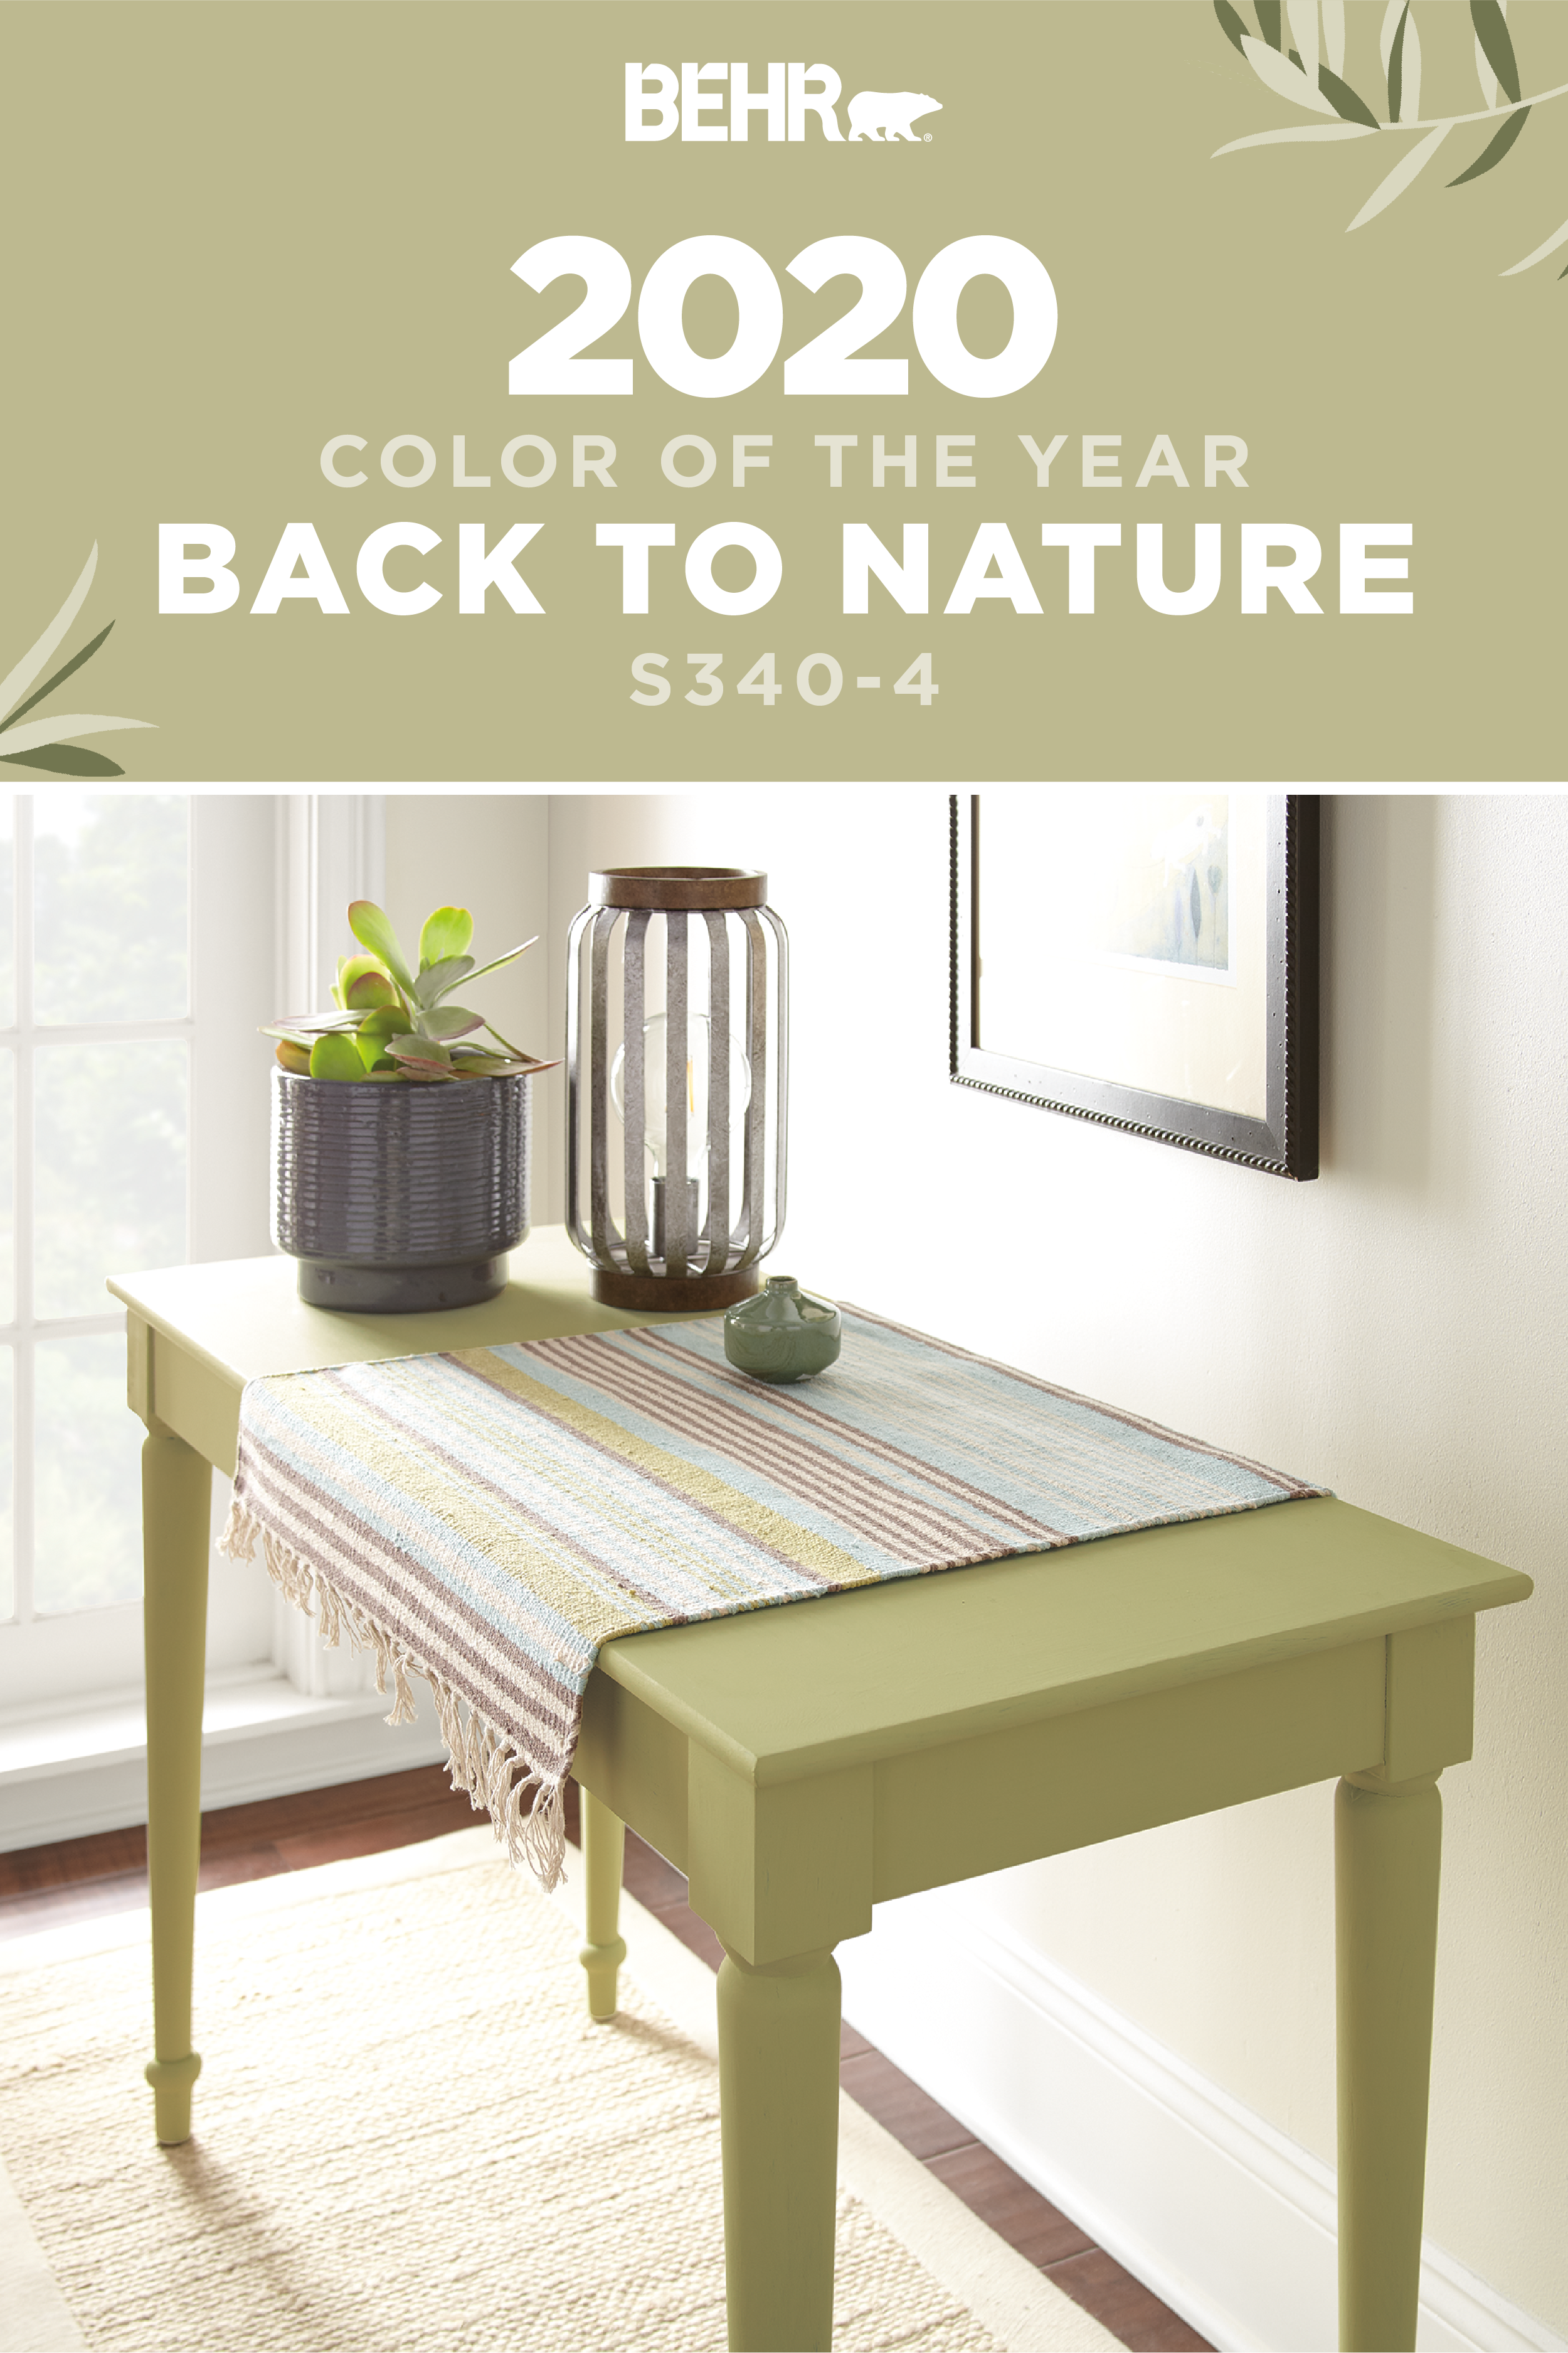 Not just for walls, the BEHR® 2020 Color of the Year also